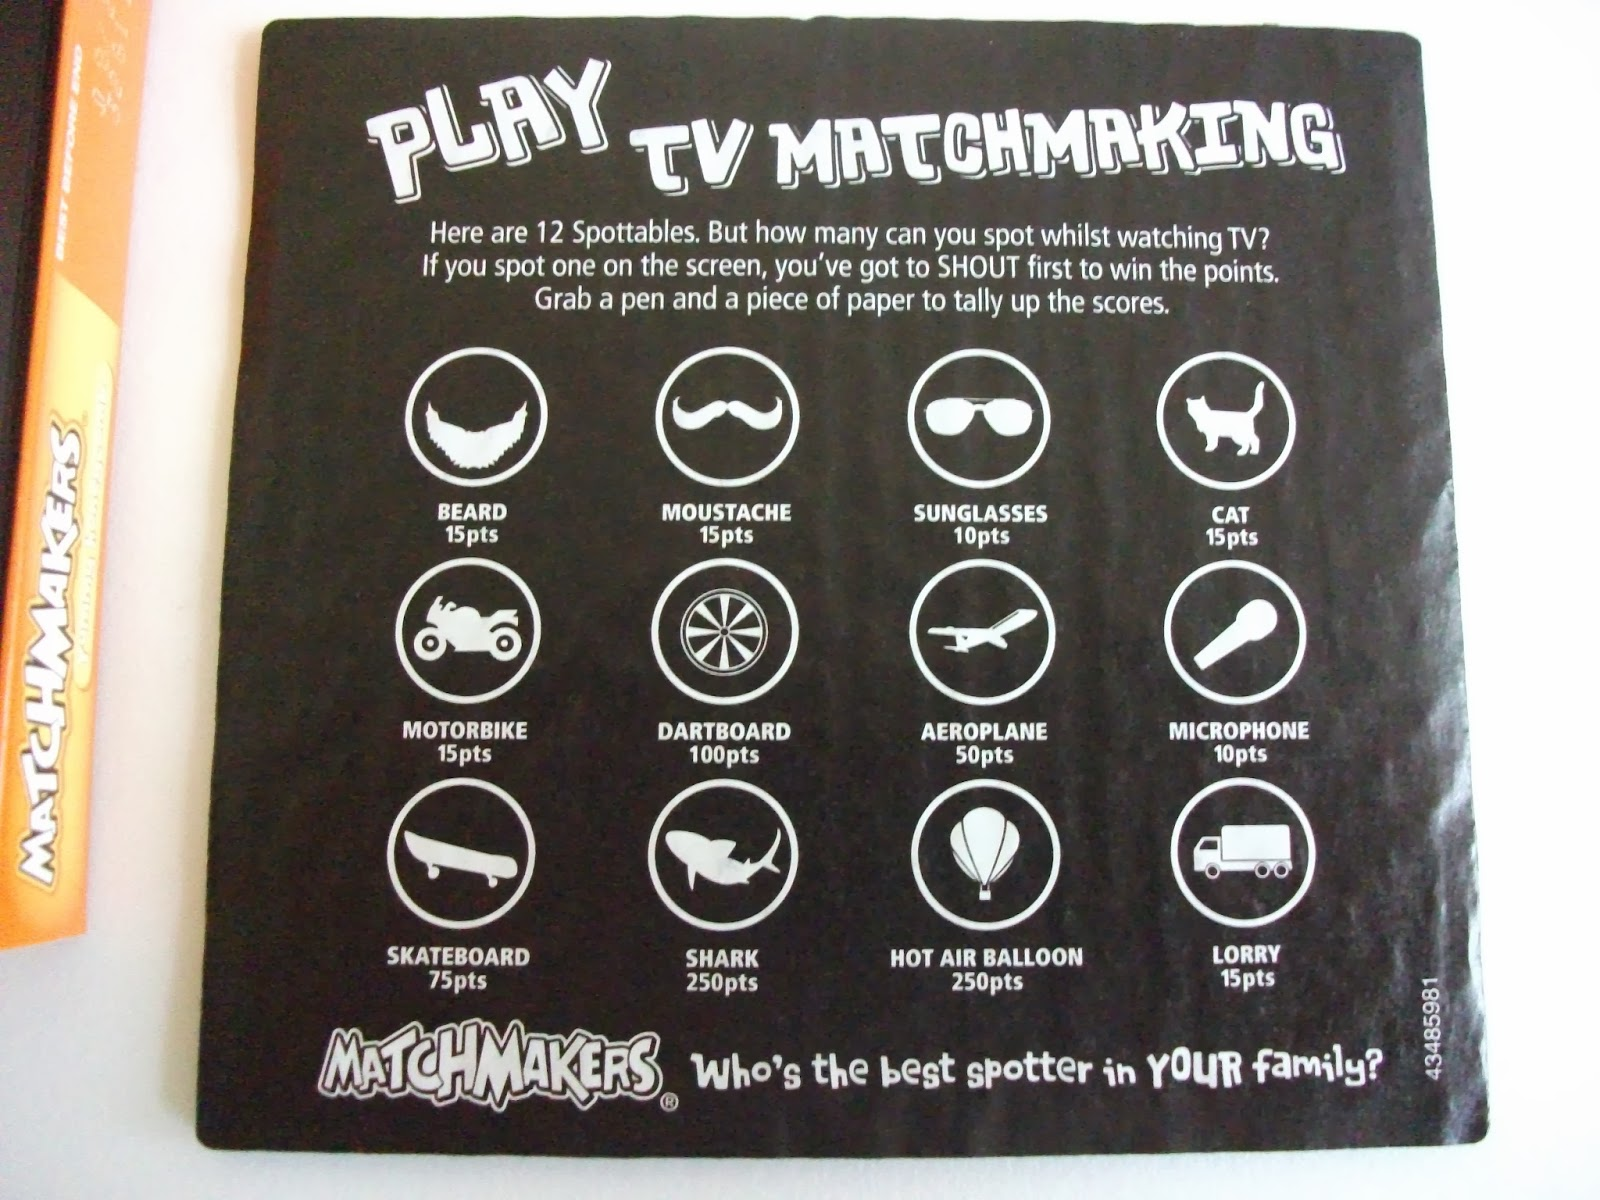 flavour matchmaking